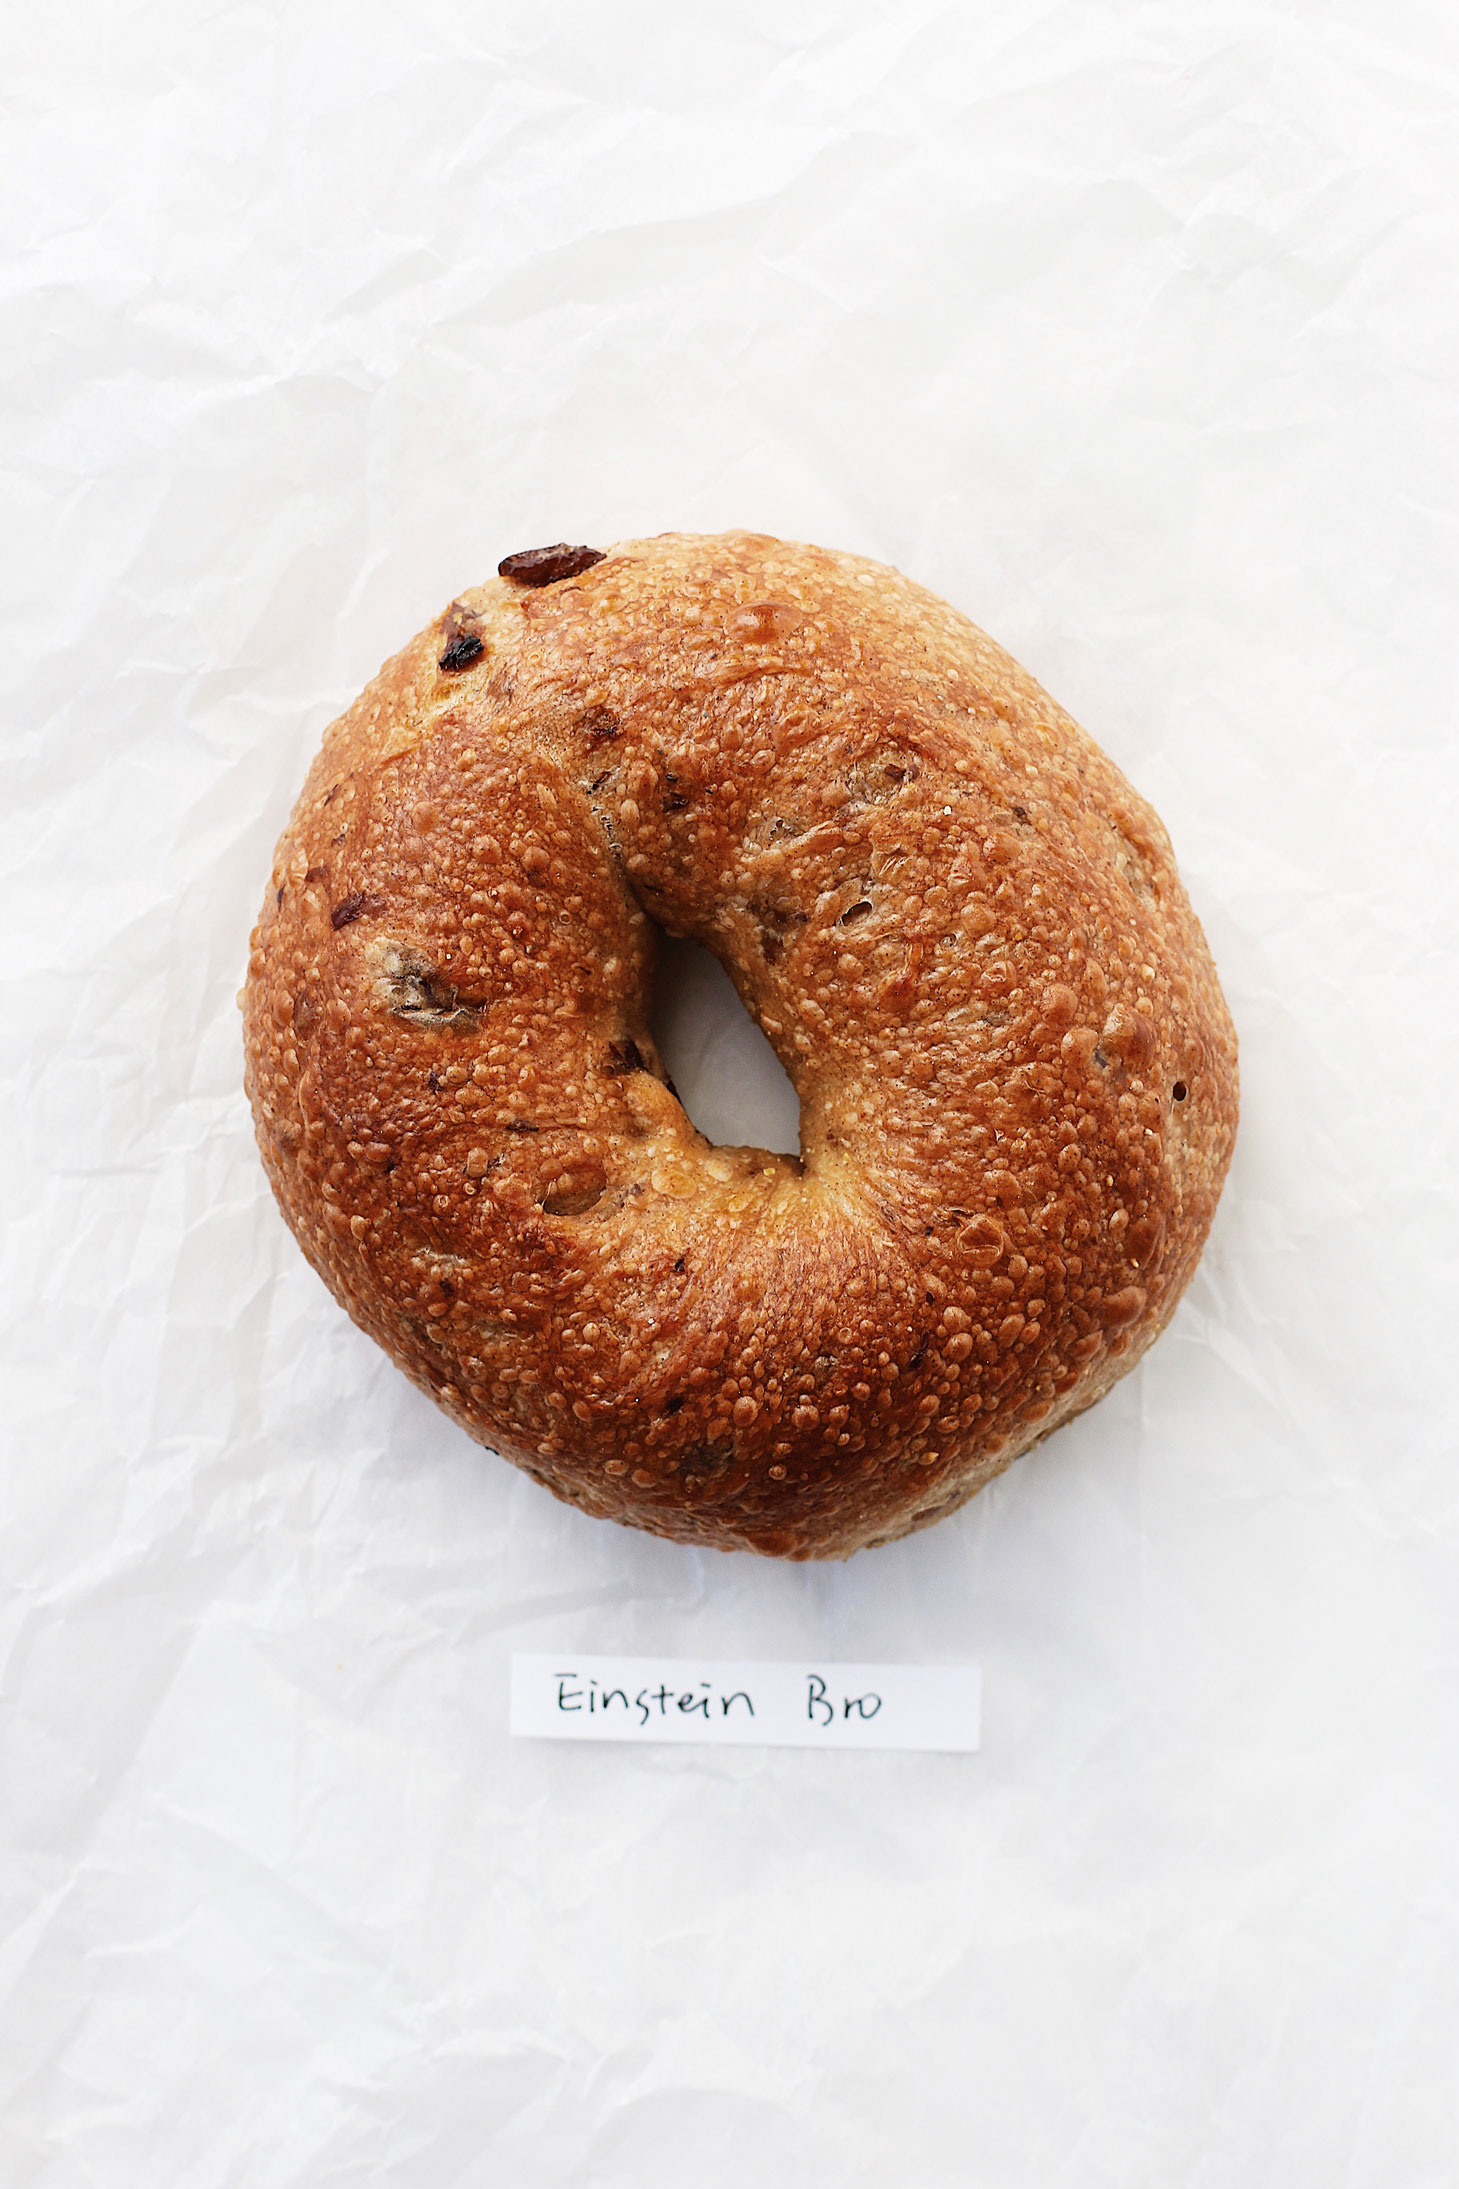 best-bagel-in-seattle-great-bagel-off-einstein-bro-cinnamon-rainsin